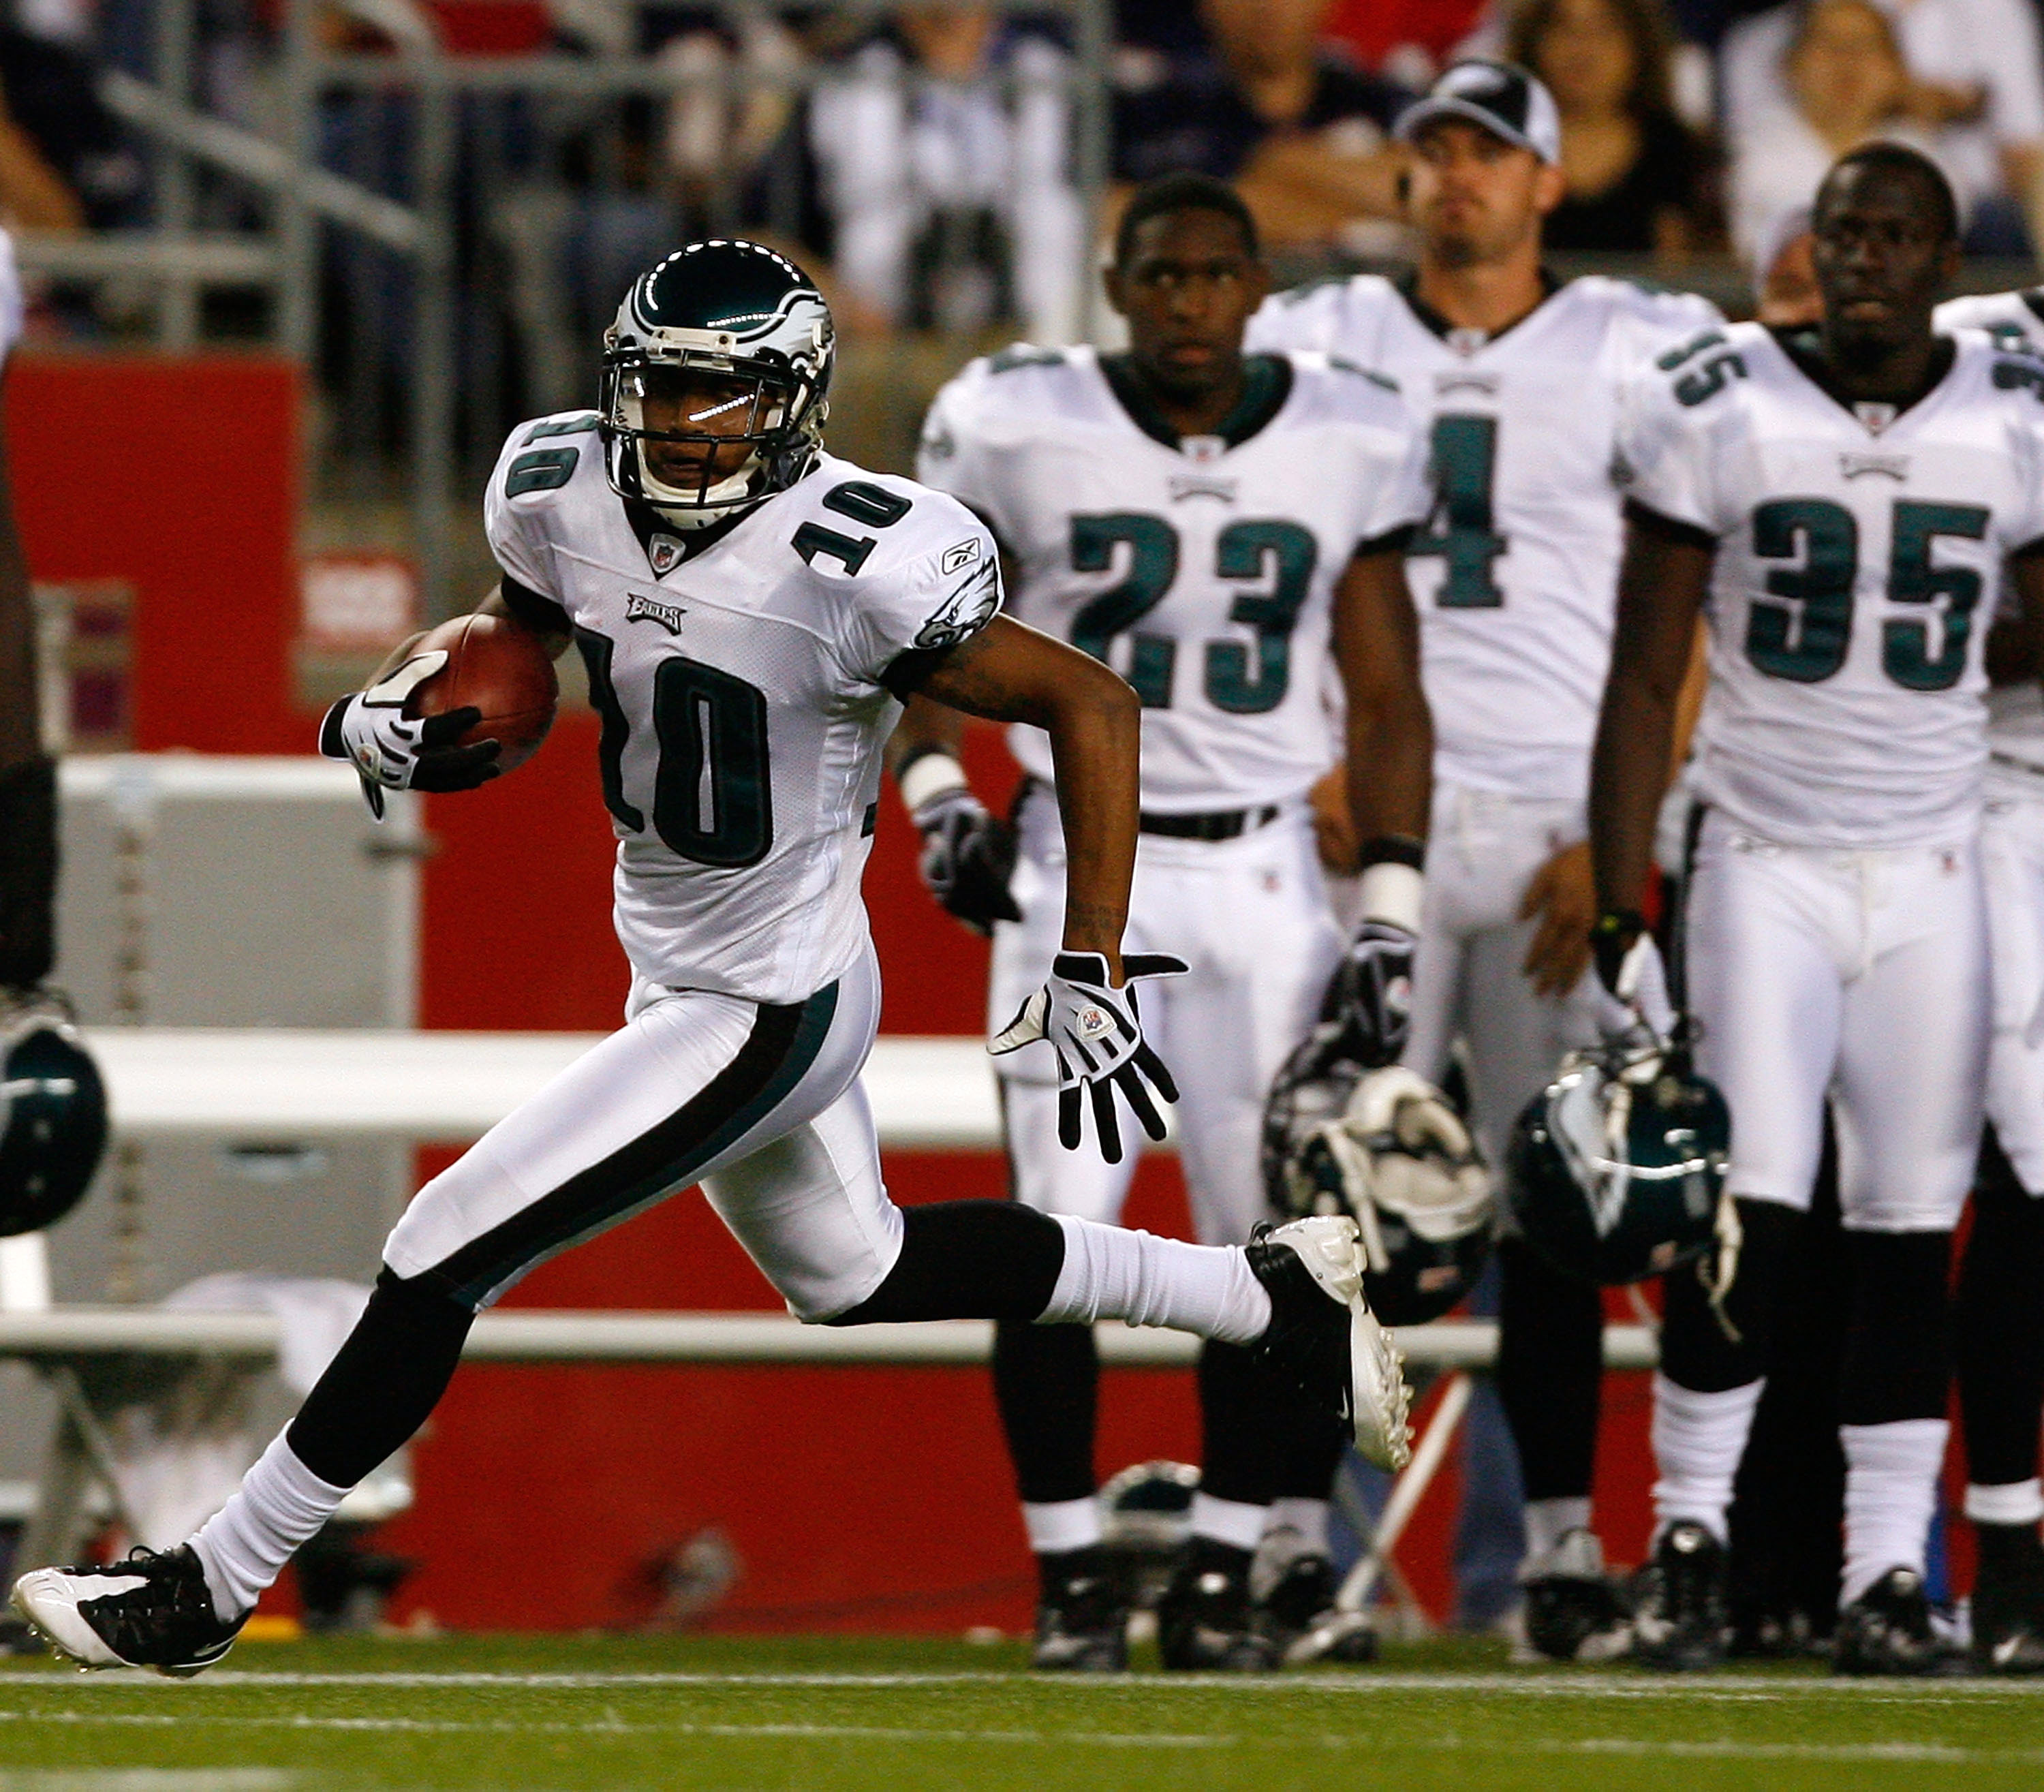 FOXBORO, MA - AUGUST 22: DeSean Jackson #10 of the Philadelphia Eagles gains yardage during a preseason game against the New England Patriots at Gillette Stadium on August 22, 2008 in Foxboro, Massachusetts. (Photo by Jim Rogash/Getty Images)